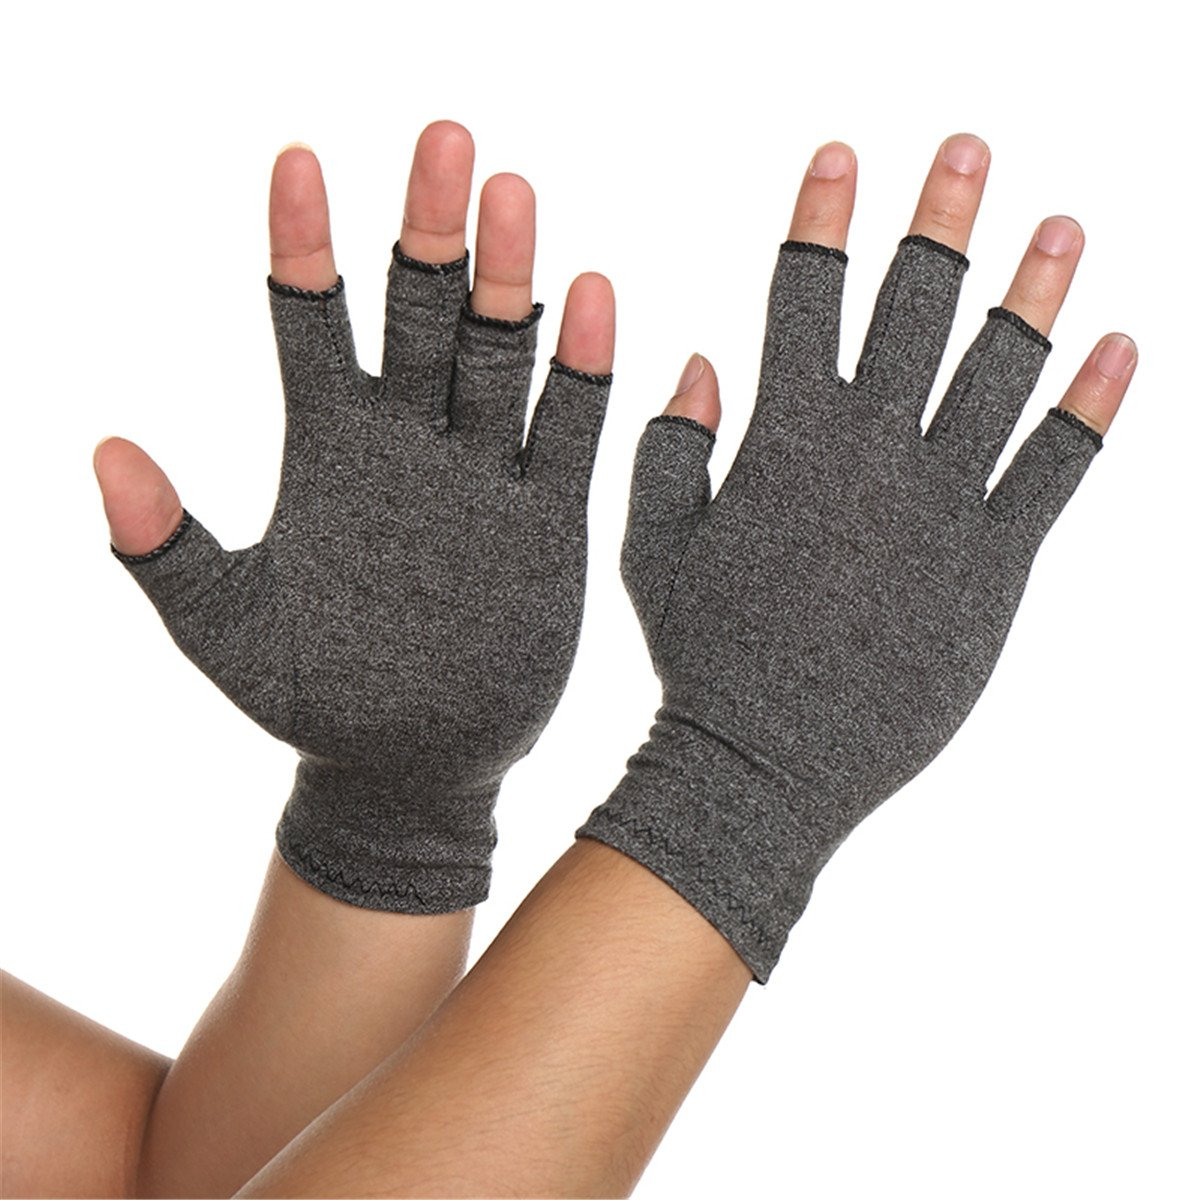 ARHSSSZY 1 Pair Arthritis Compression Fingerless Gloves for Womens Mens, Joint Pain,Cold Swollen Hand Stiffness and Neuropathy Pain Relief,Improves Blood Circulation (Light Grey,Large)